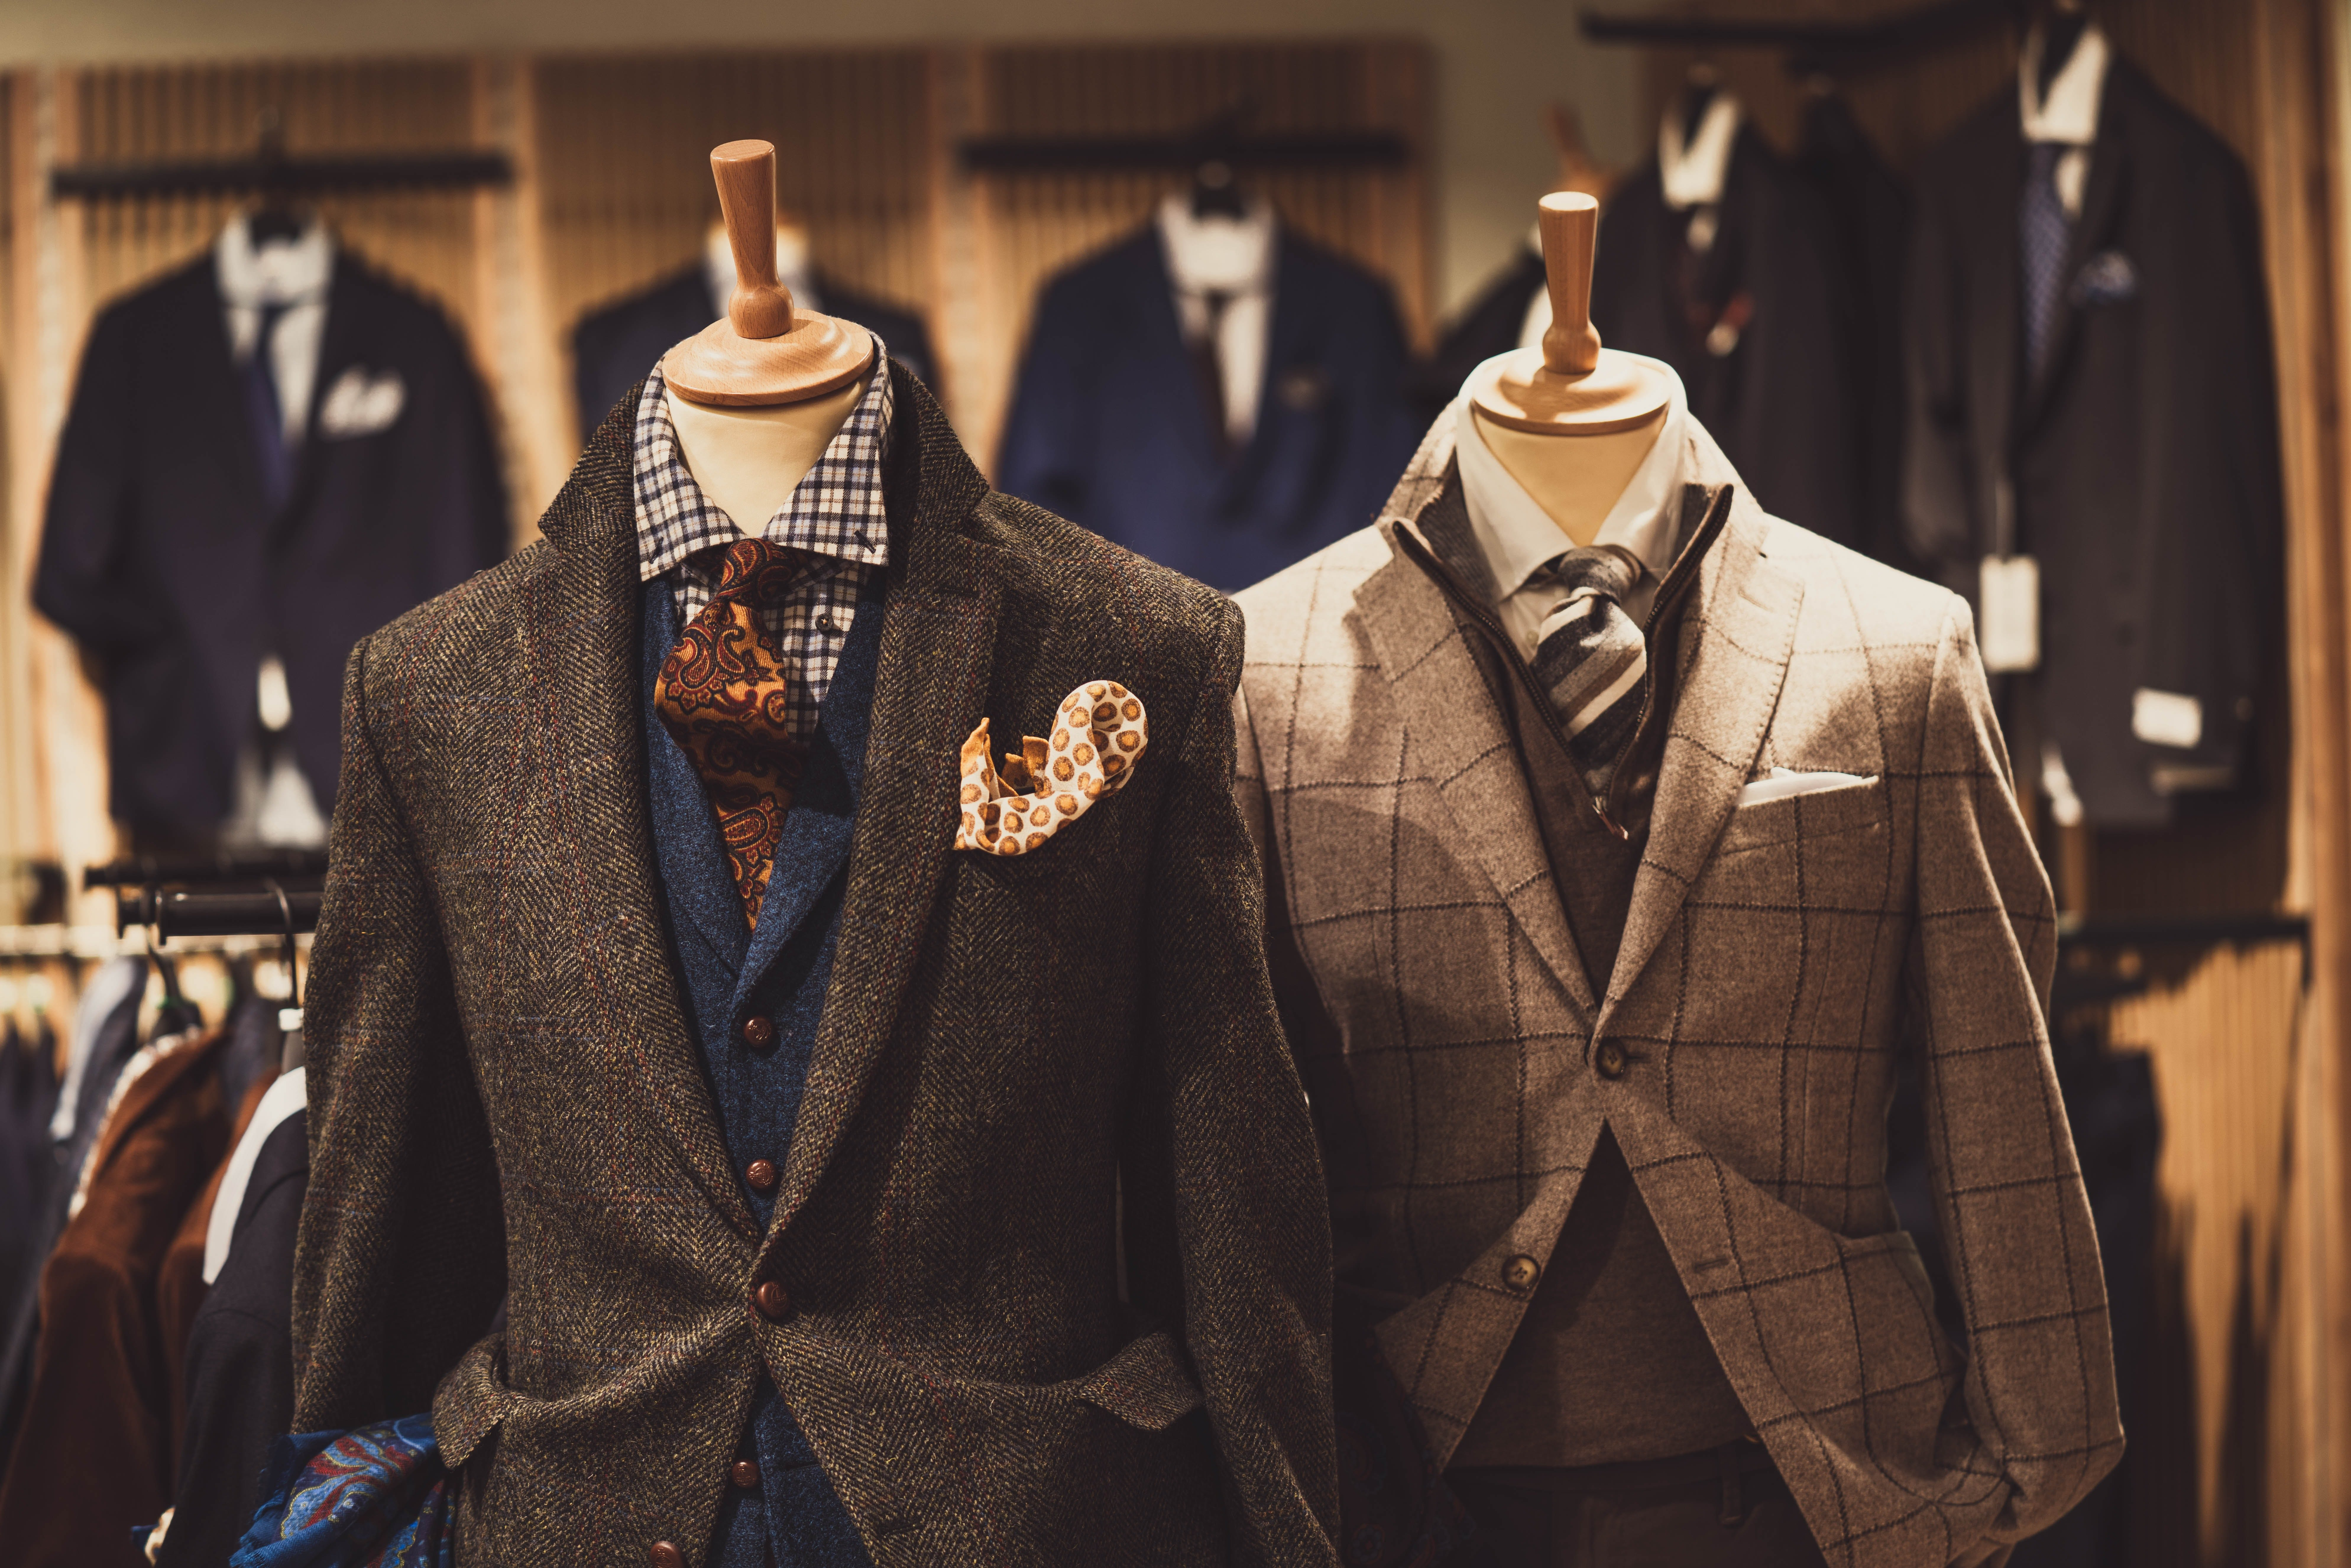 Jane wandered into the suit section and came away with a tuxedo that fit her perfectly | Source: Pexels